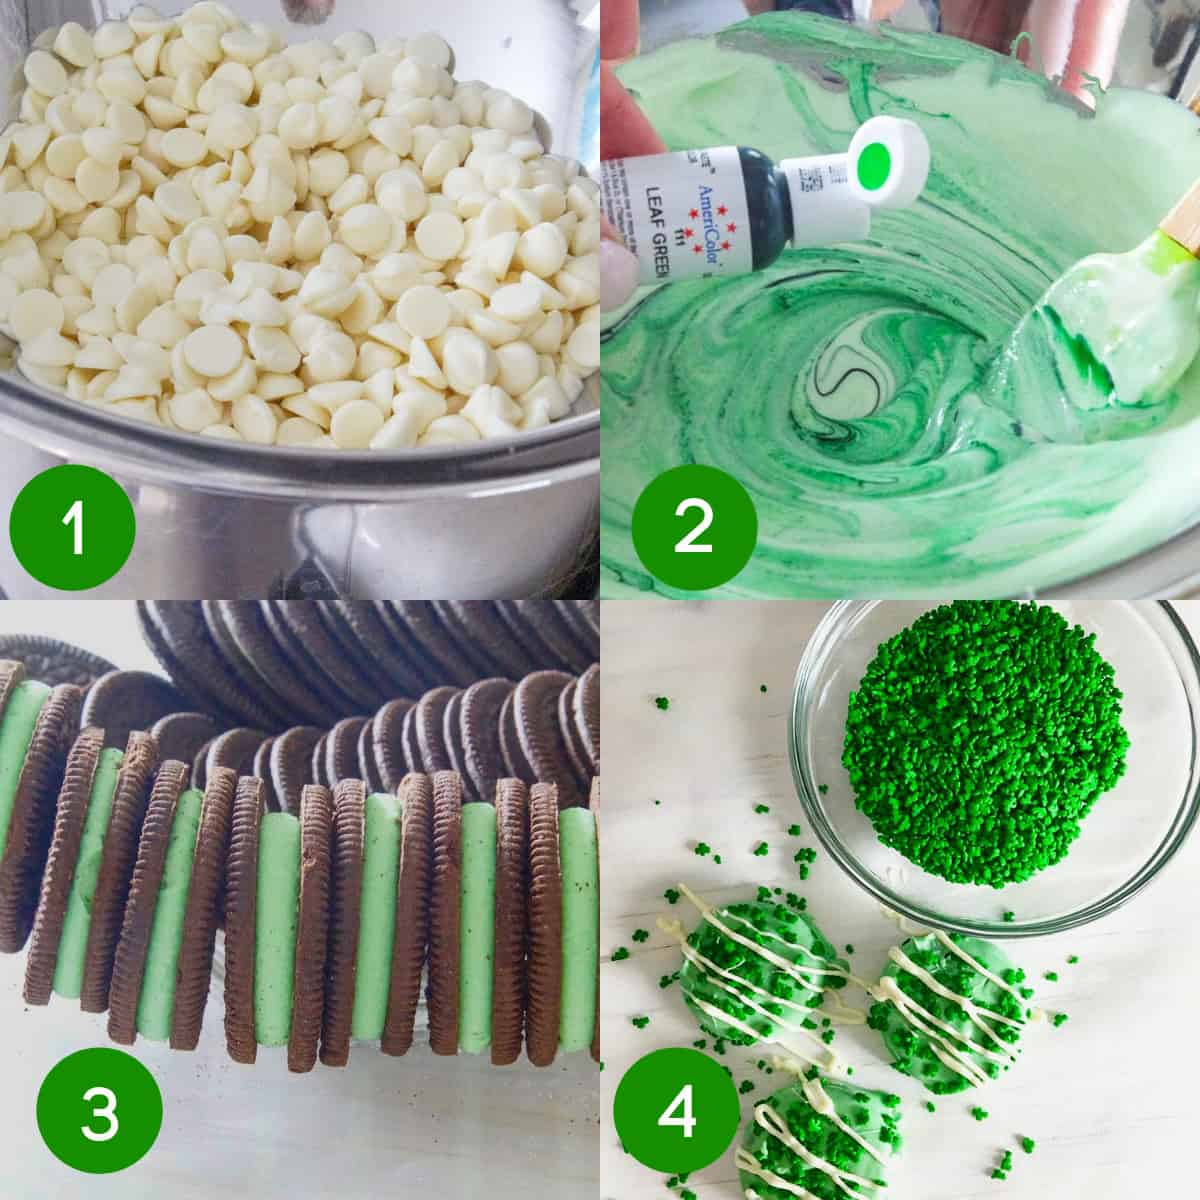 4 step by step images showing how to make green oreos for St Patricks Day.